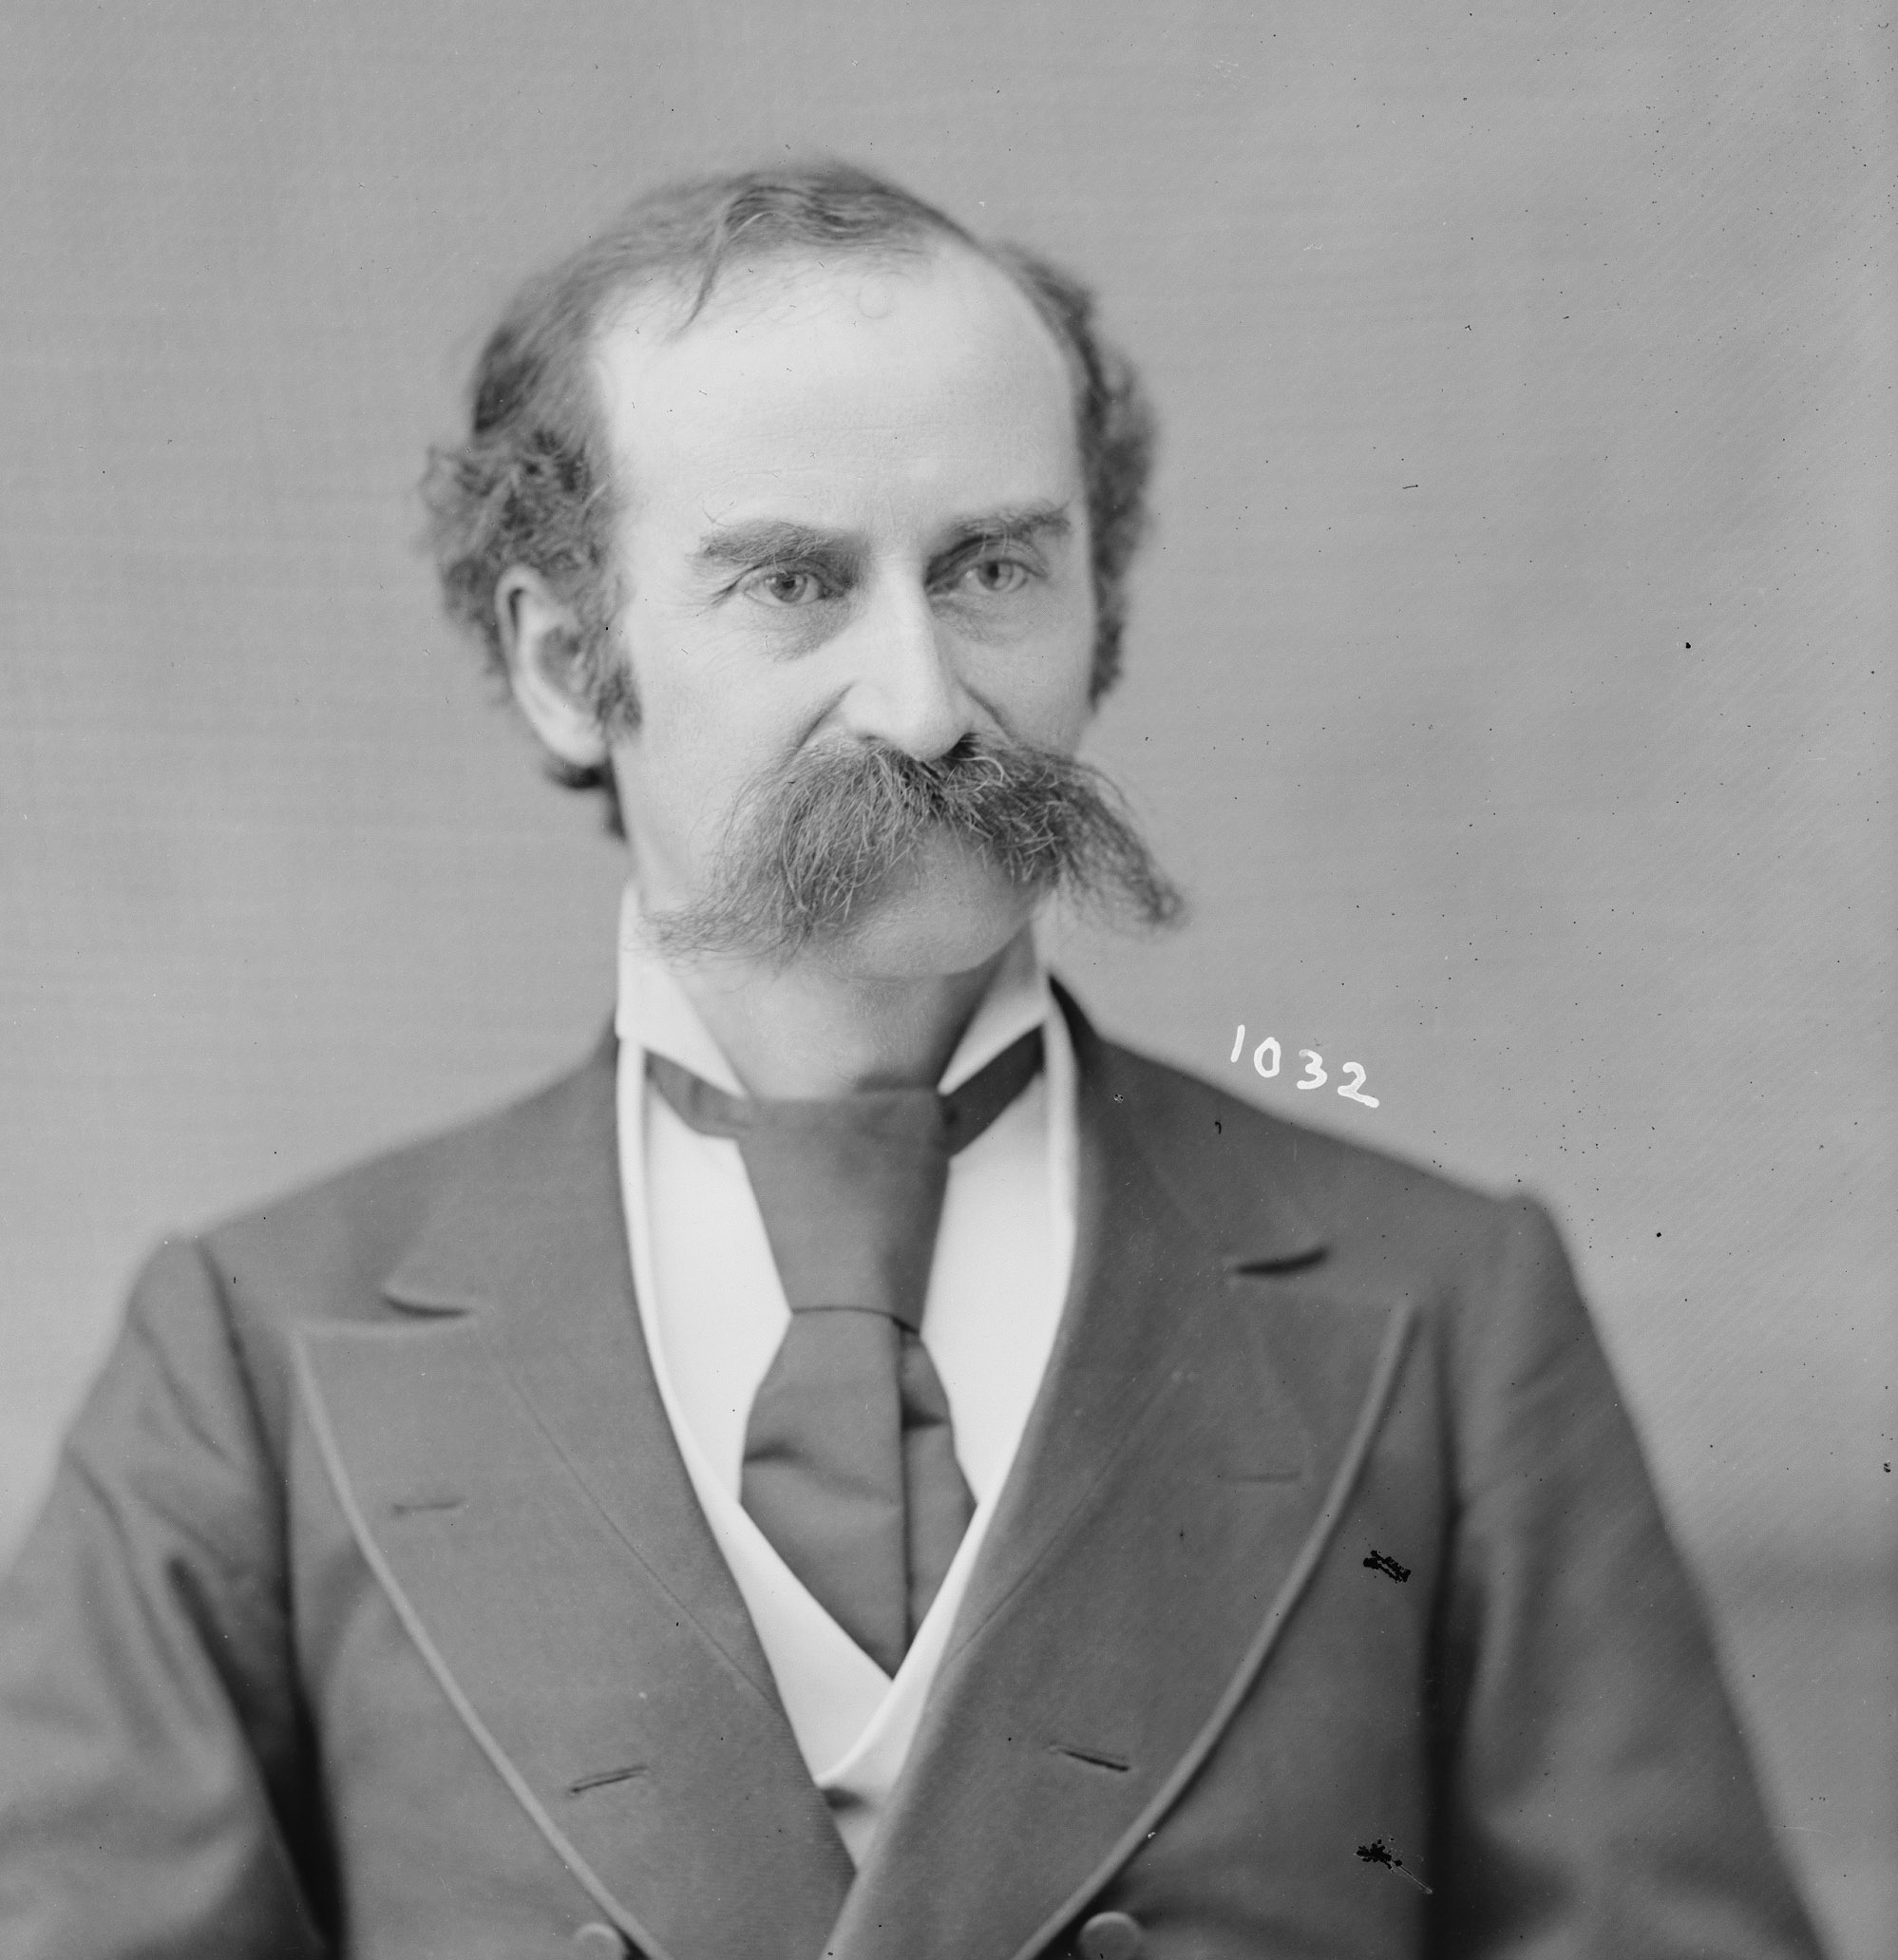 John Maynard Woodworth